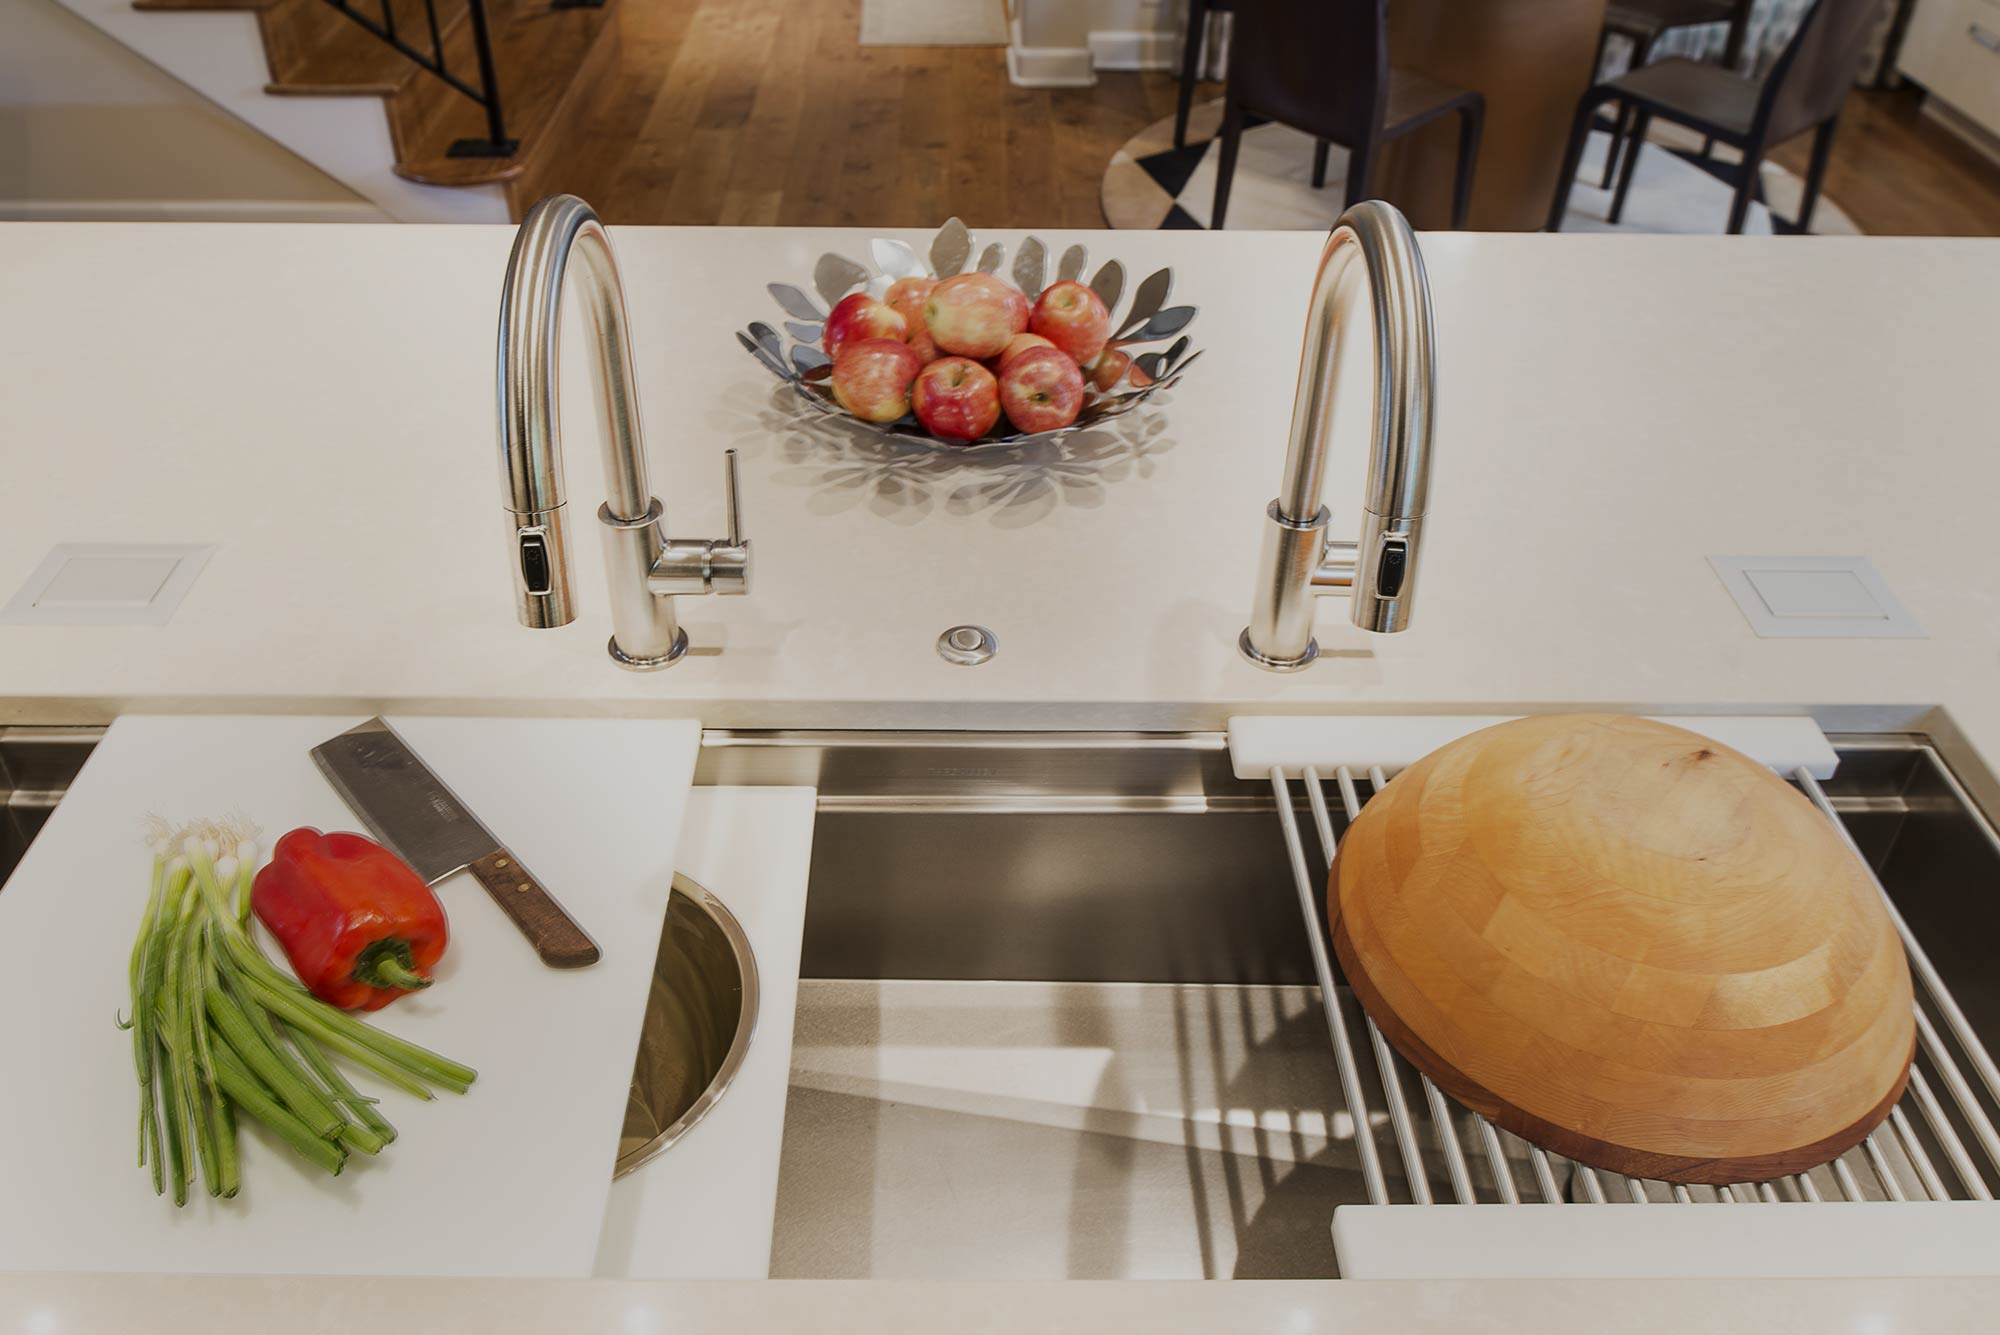 Chrome and Cream modern kitchen with Galley Workstation kitchen sink